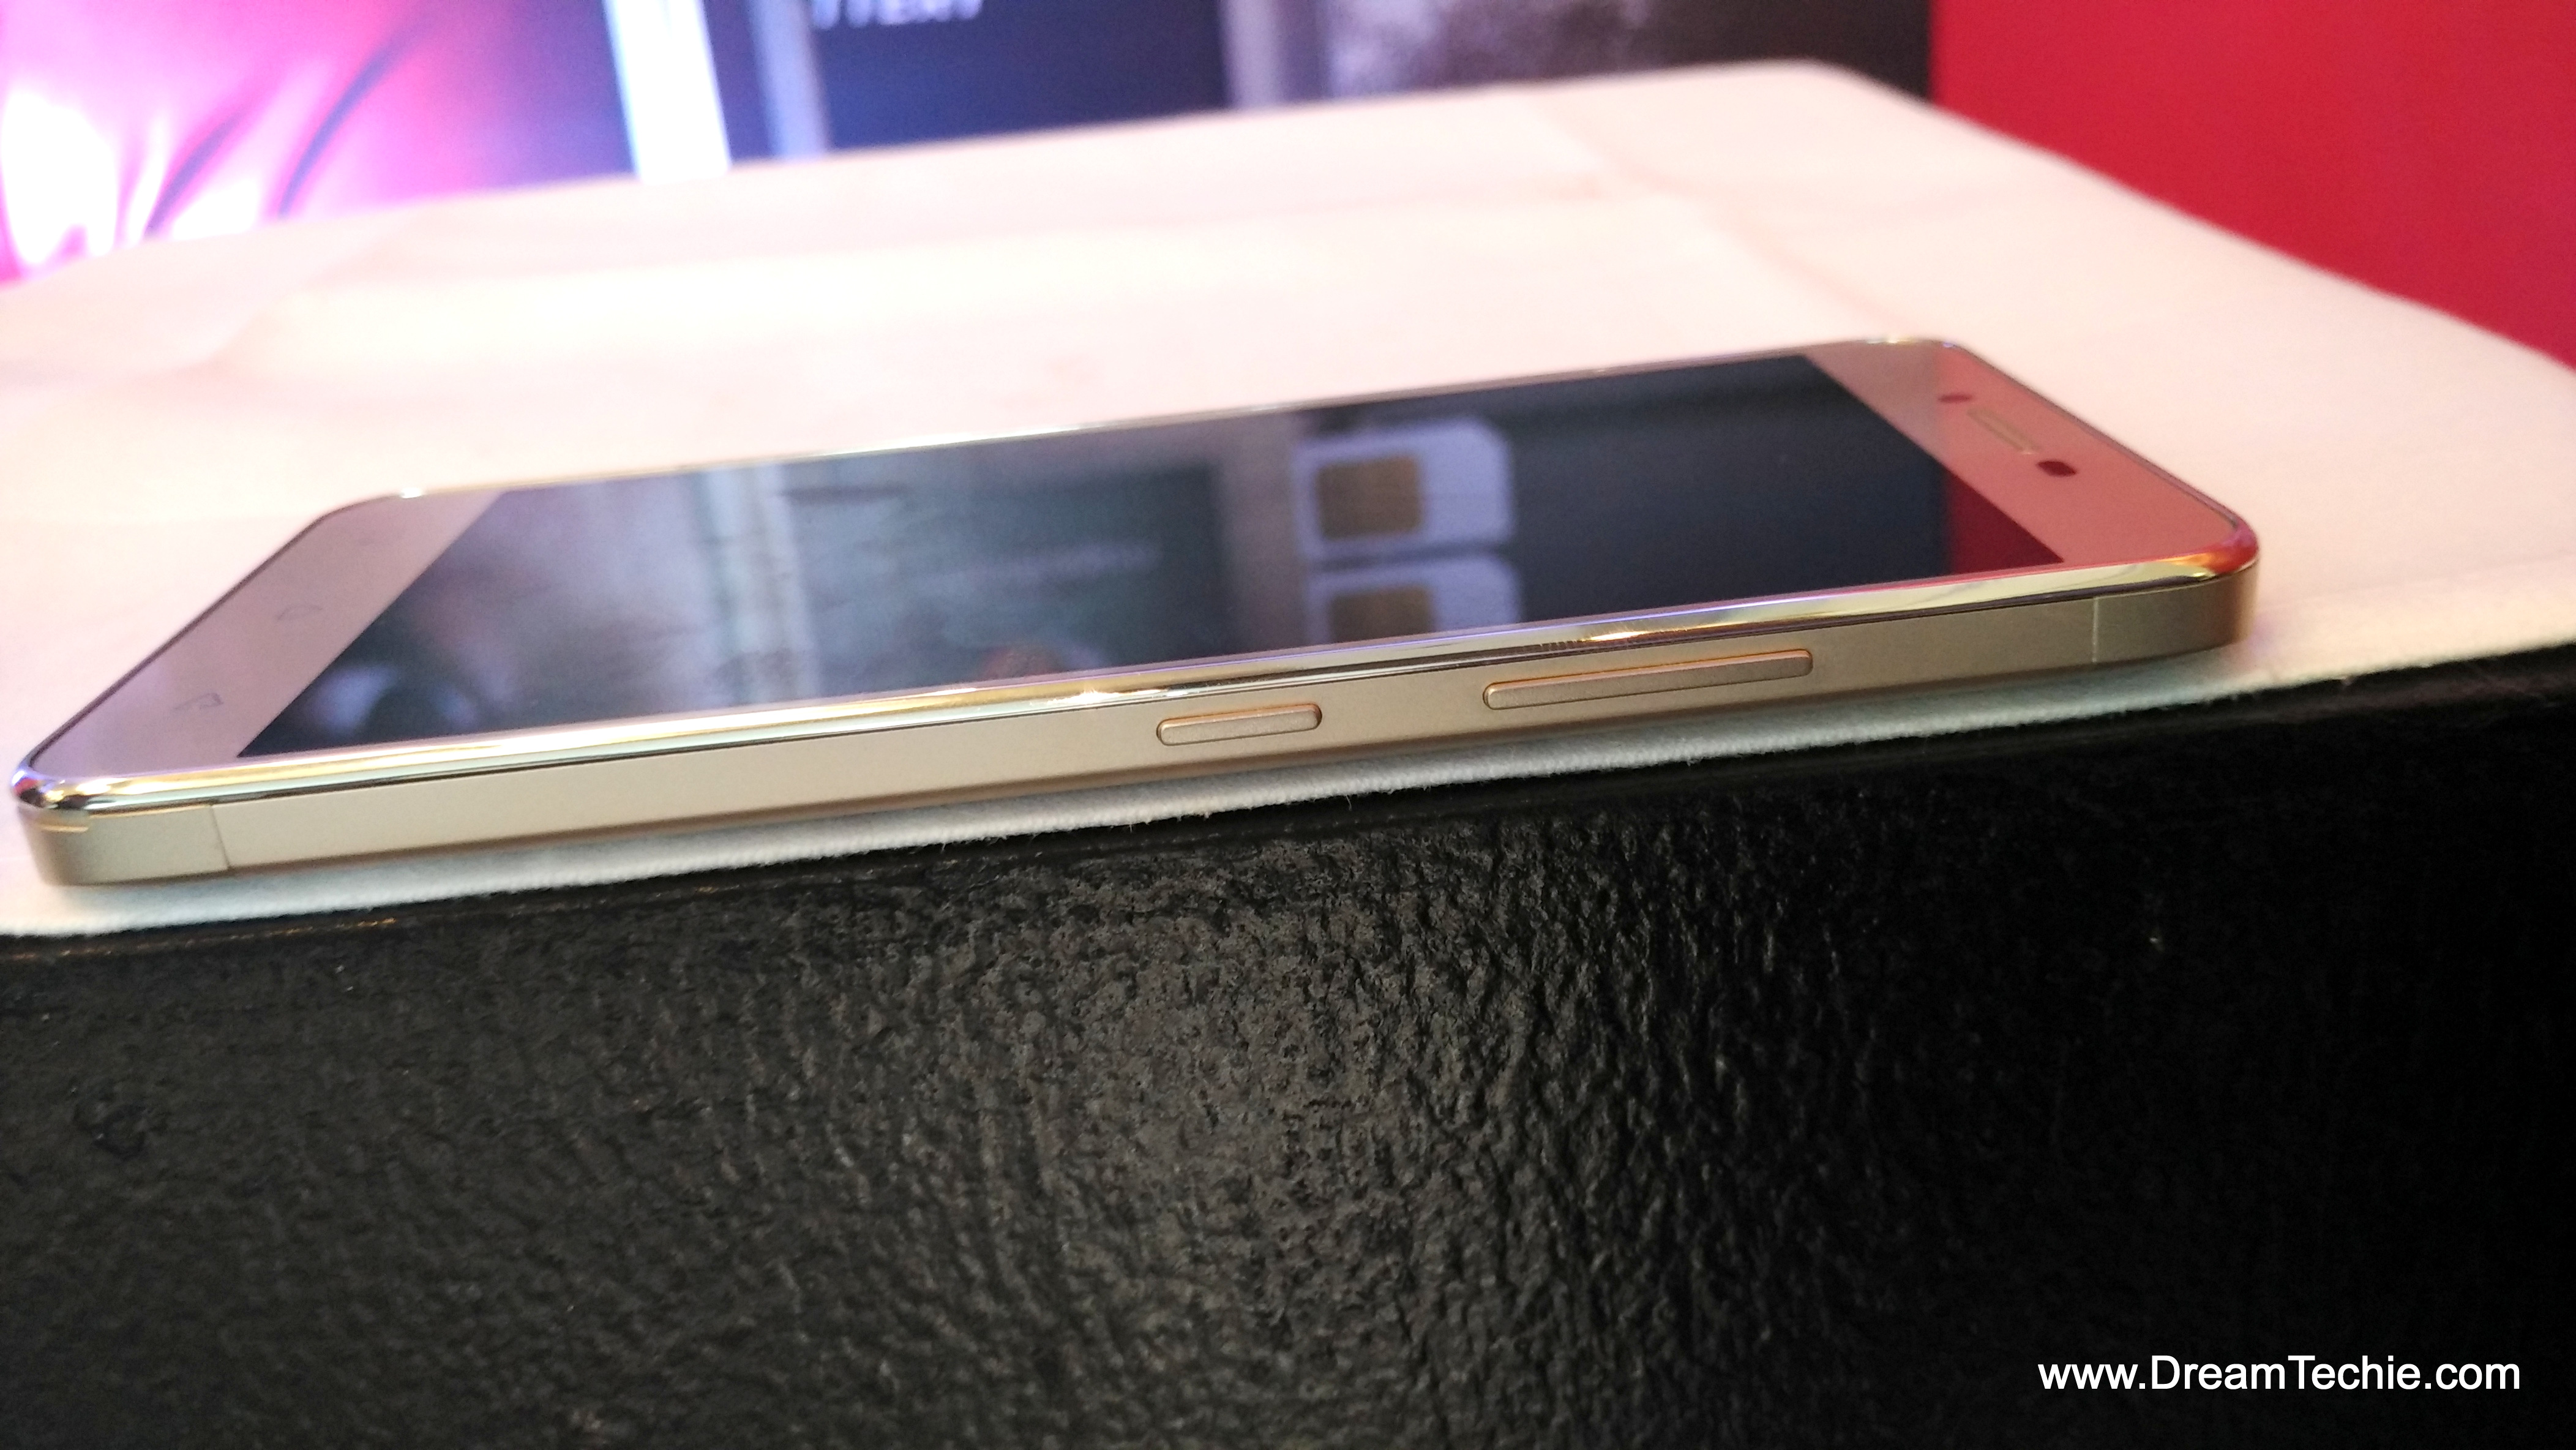 Lenovo Vibe K5 Plus Champagne Gold Color Pics & Review